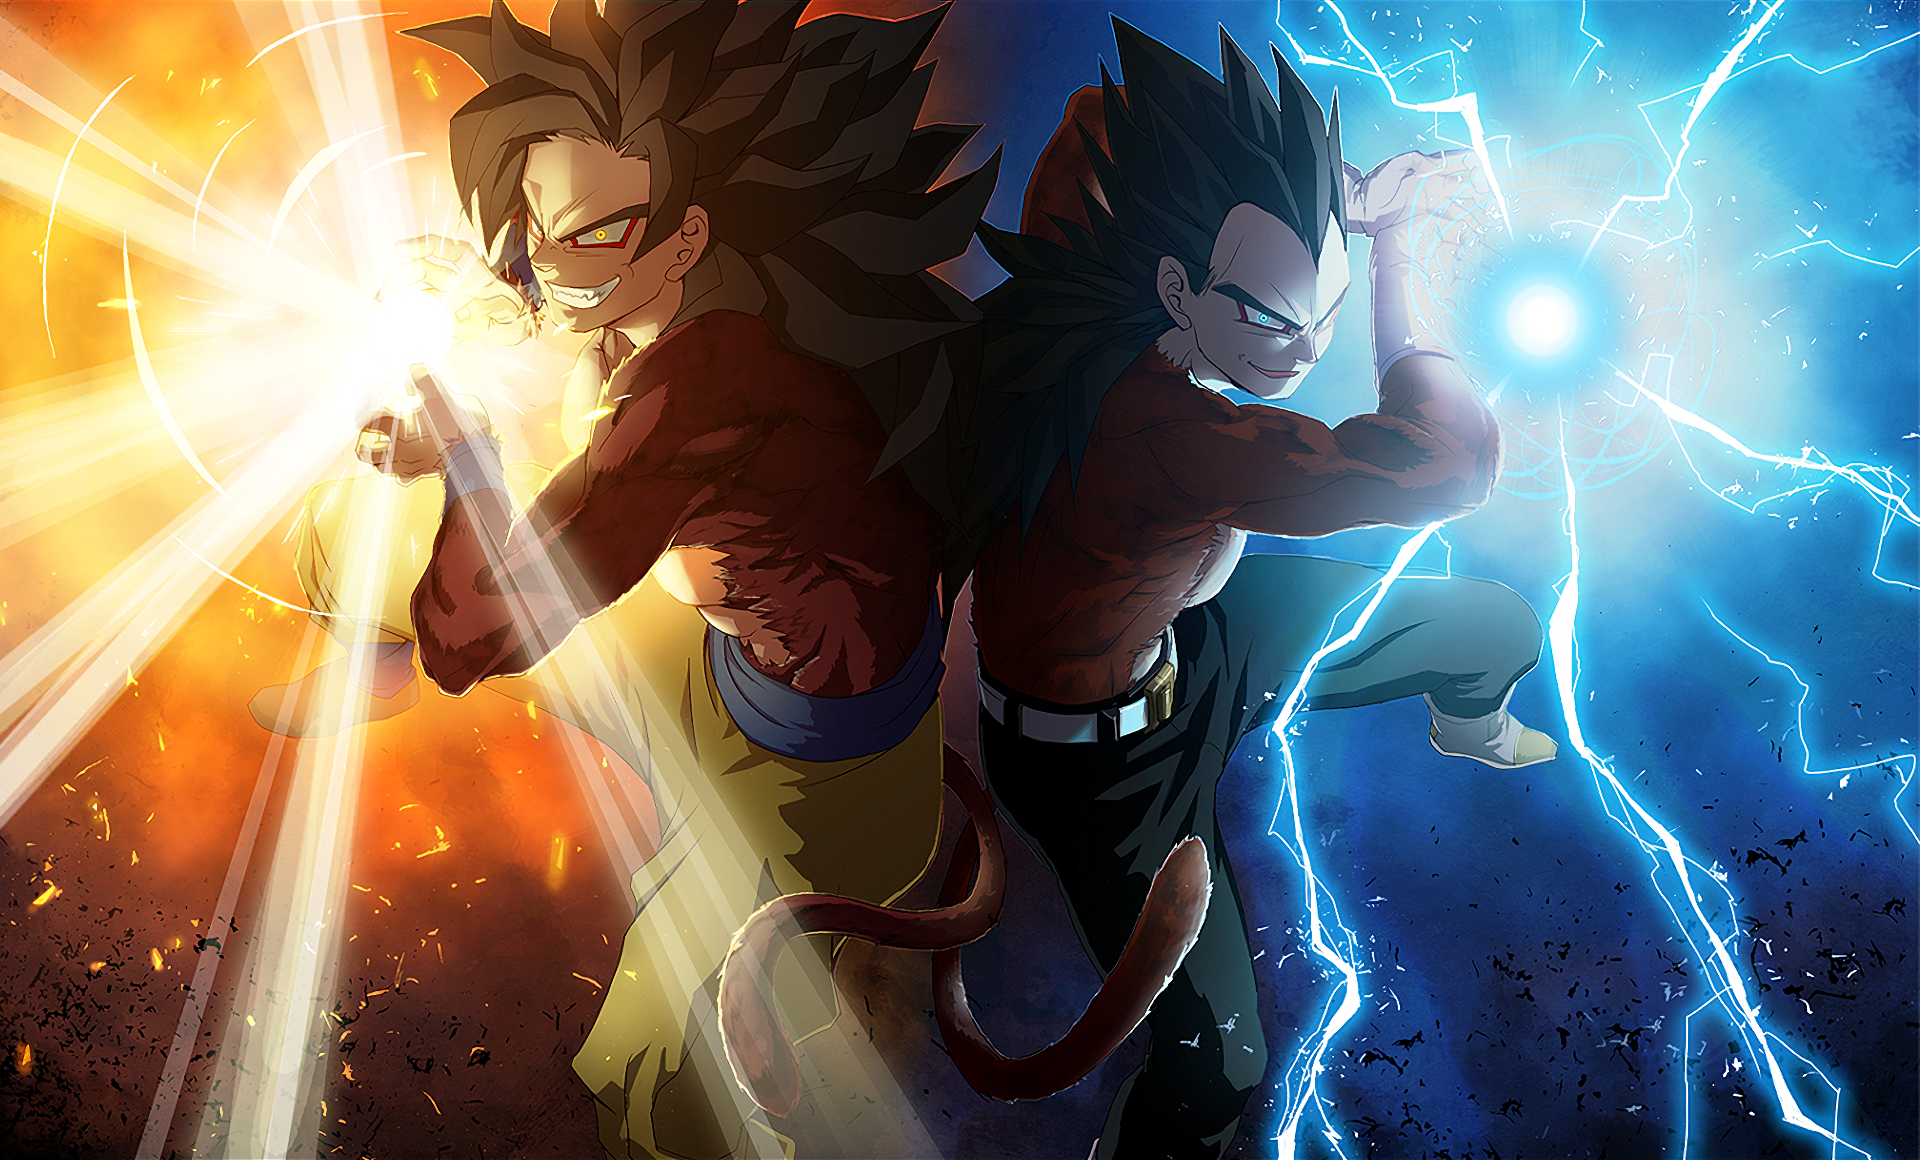 Goku and vegeta ssj4 full hd fond d 39 cran and arri re plan for Fond ecran dbz